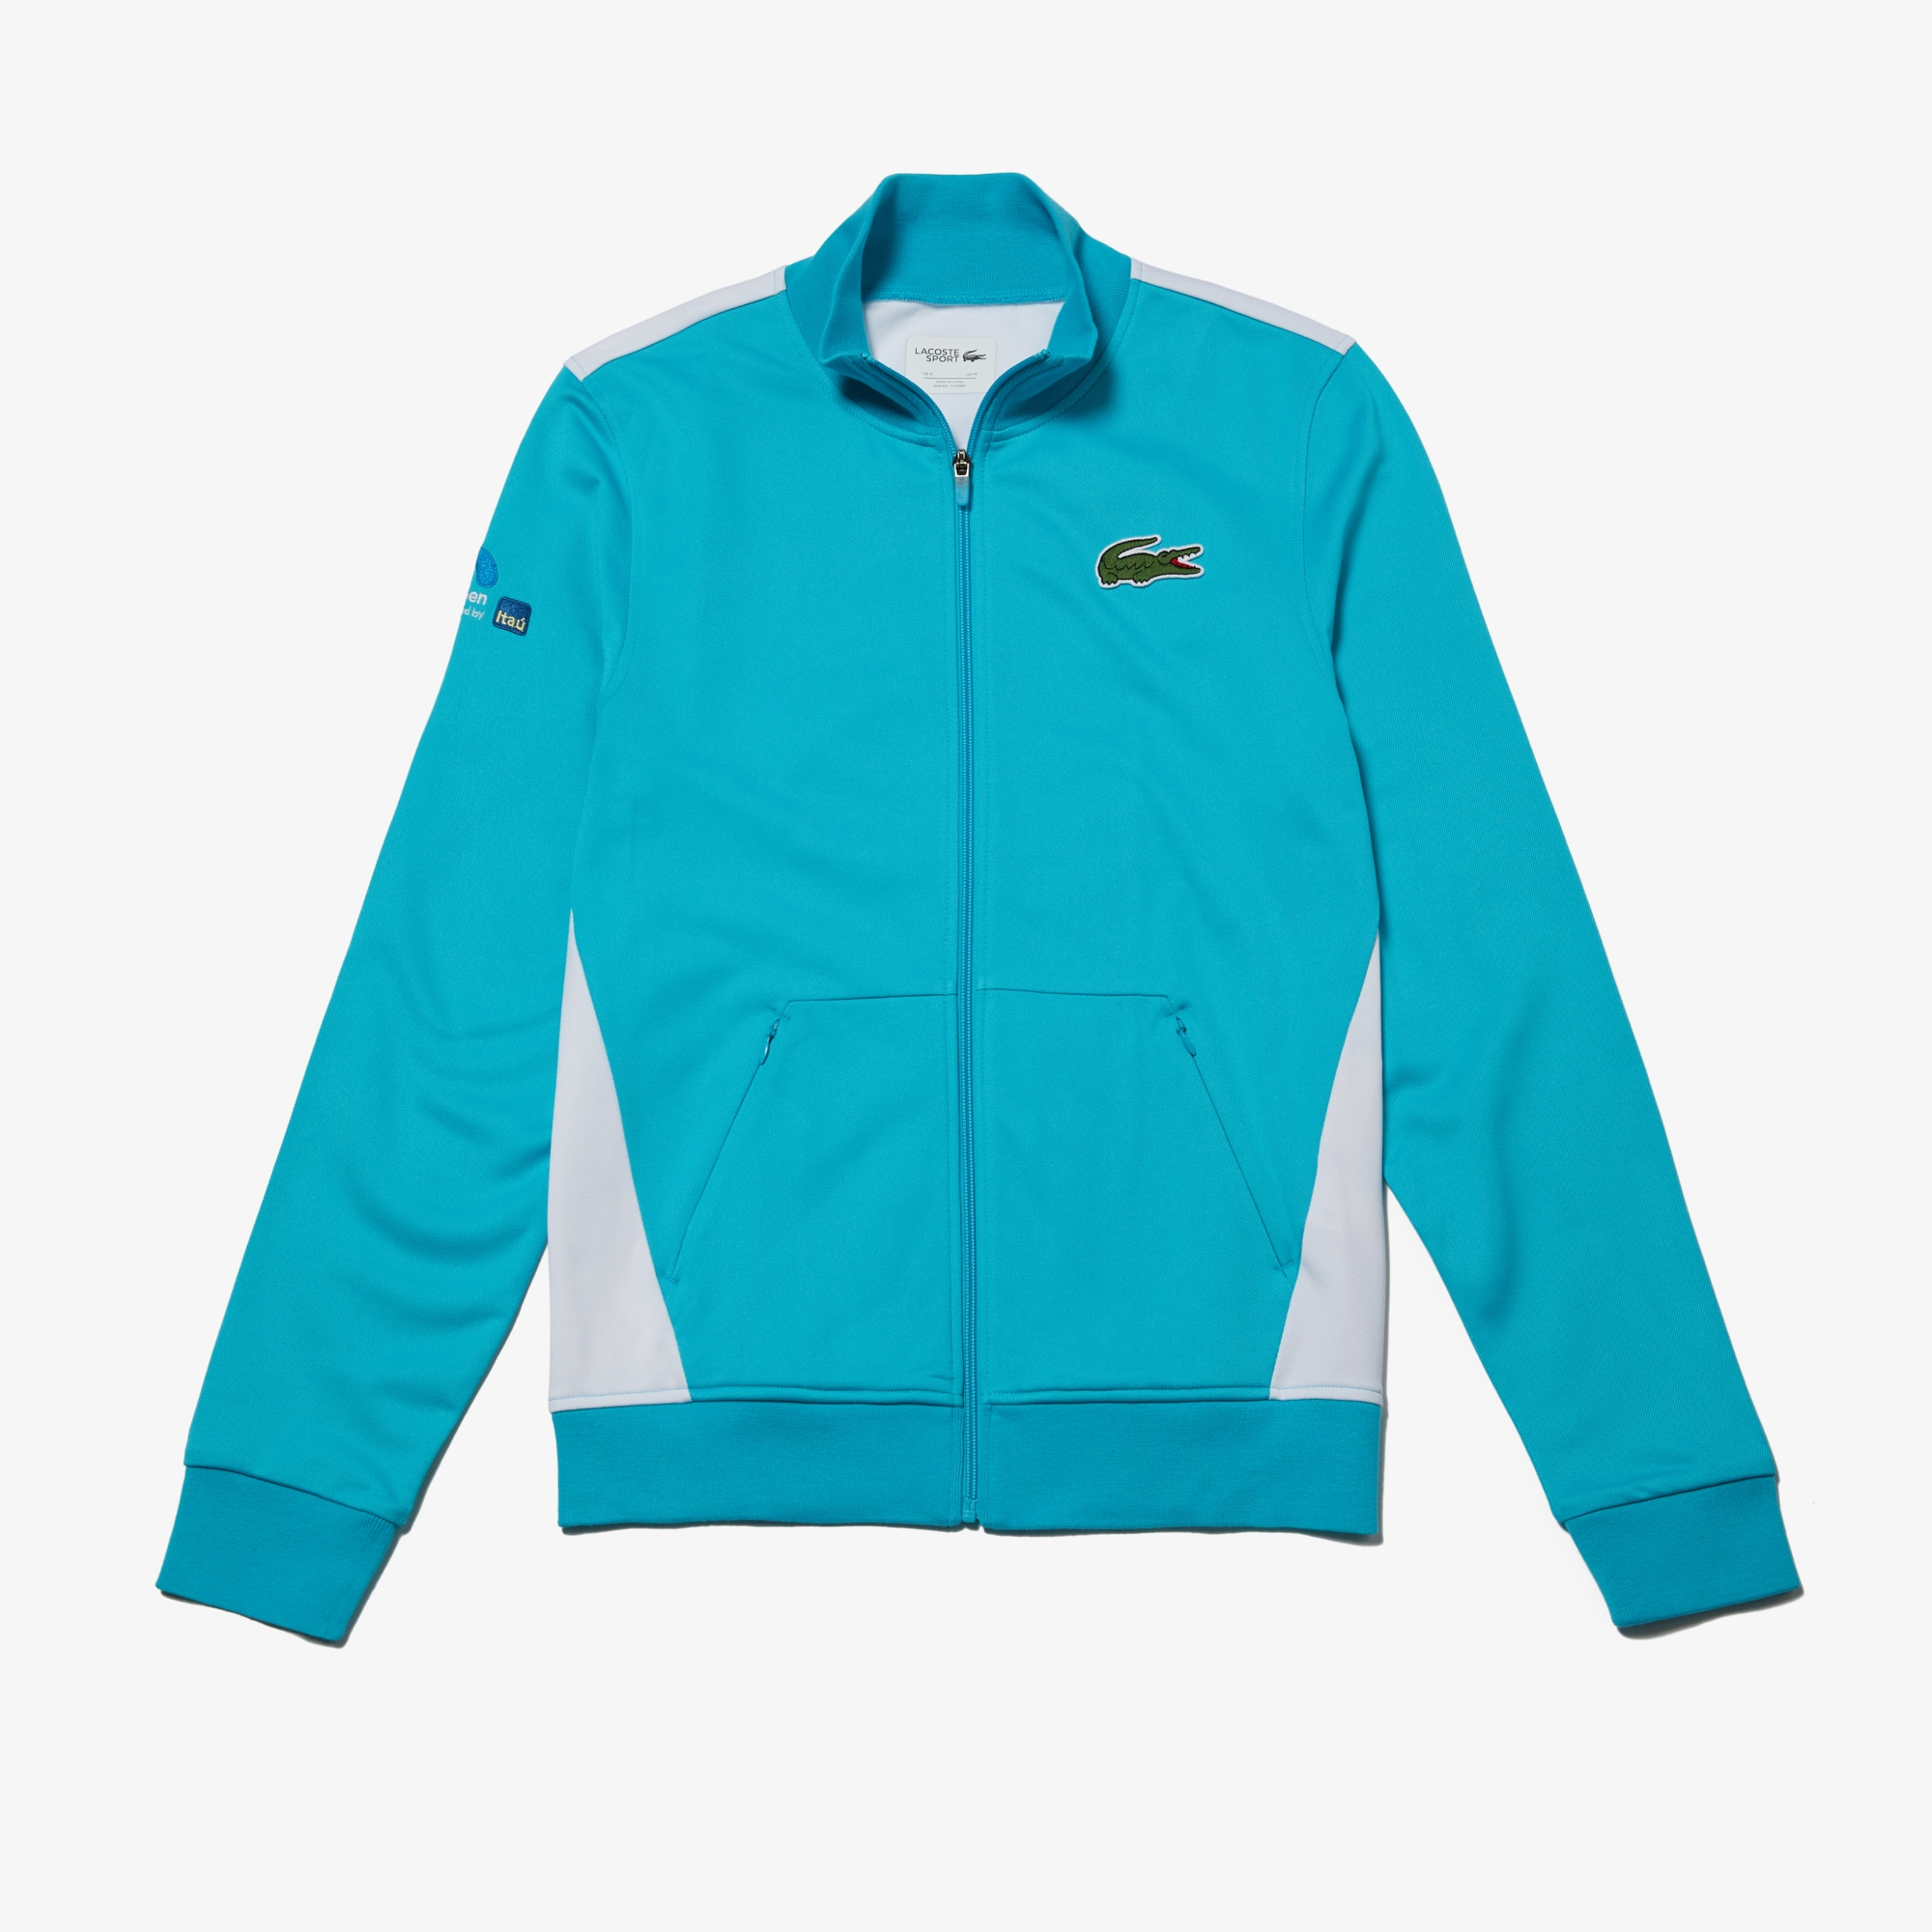 Men's SPORT Miami Open Edition Jacket